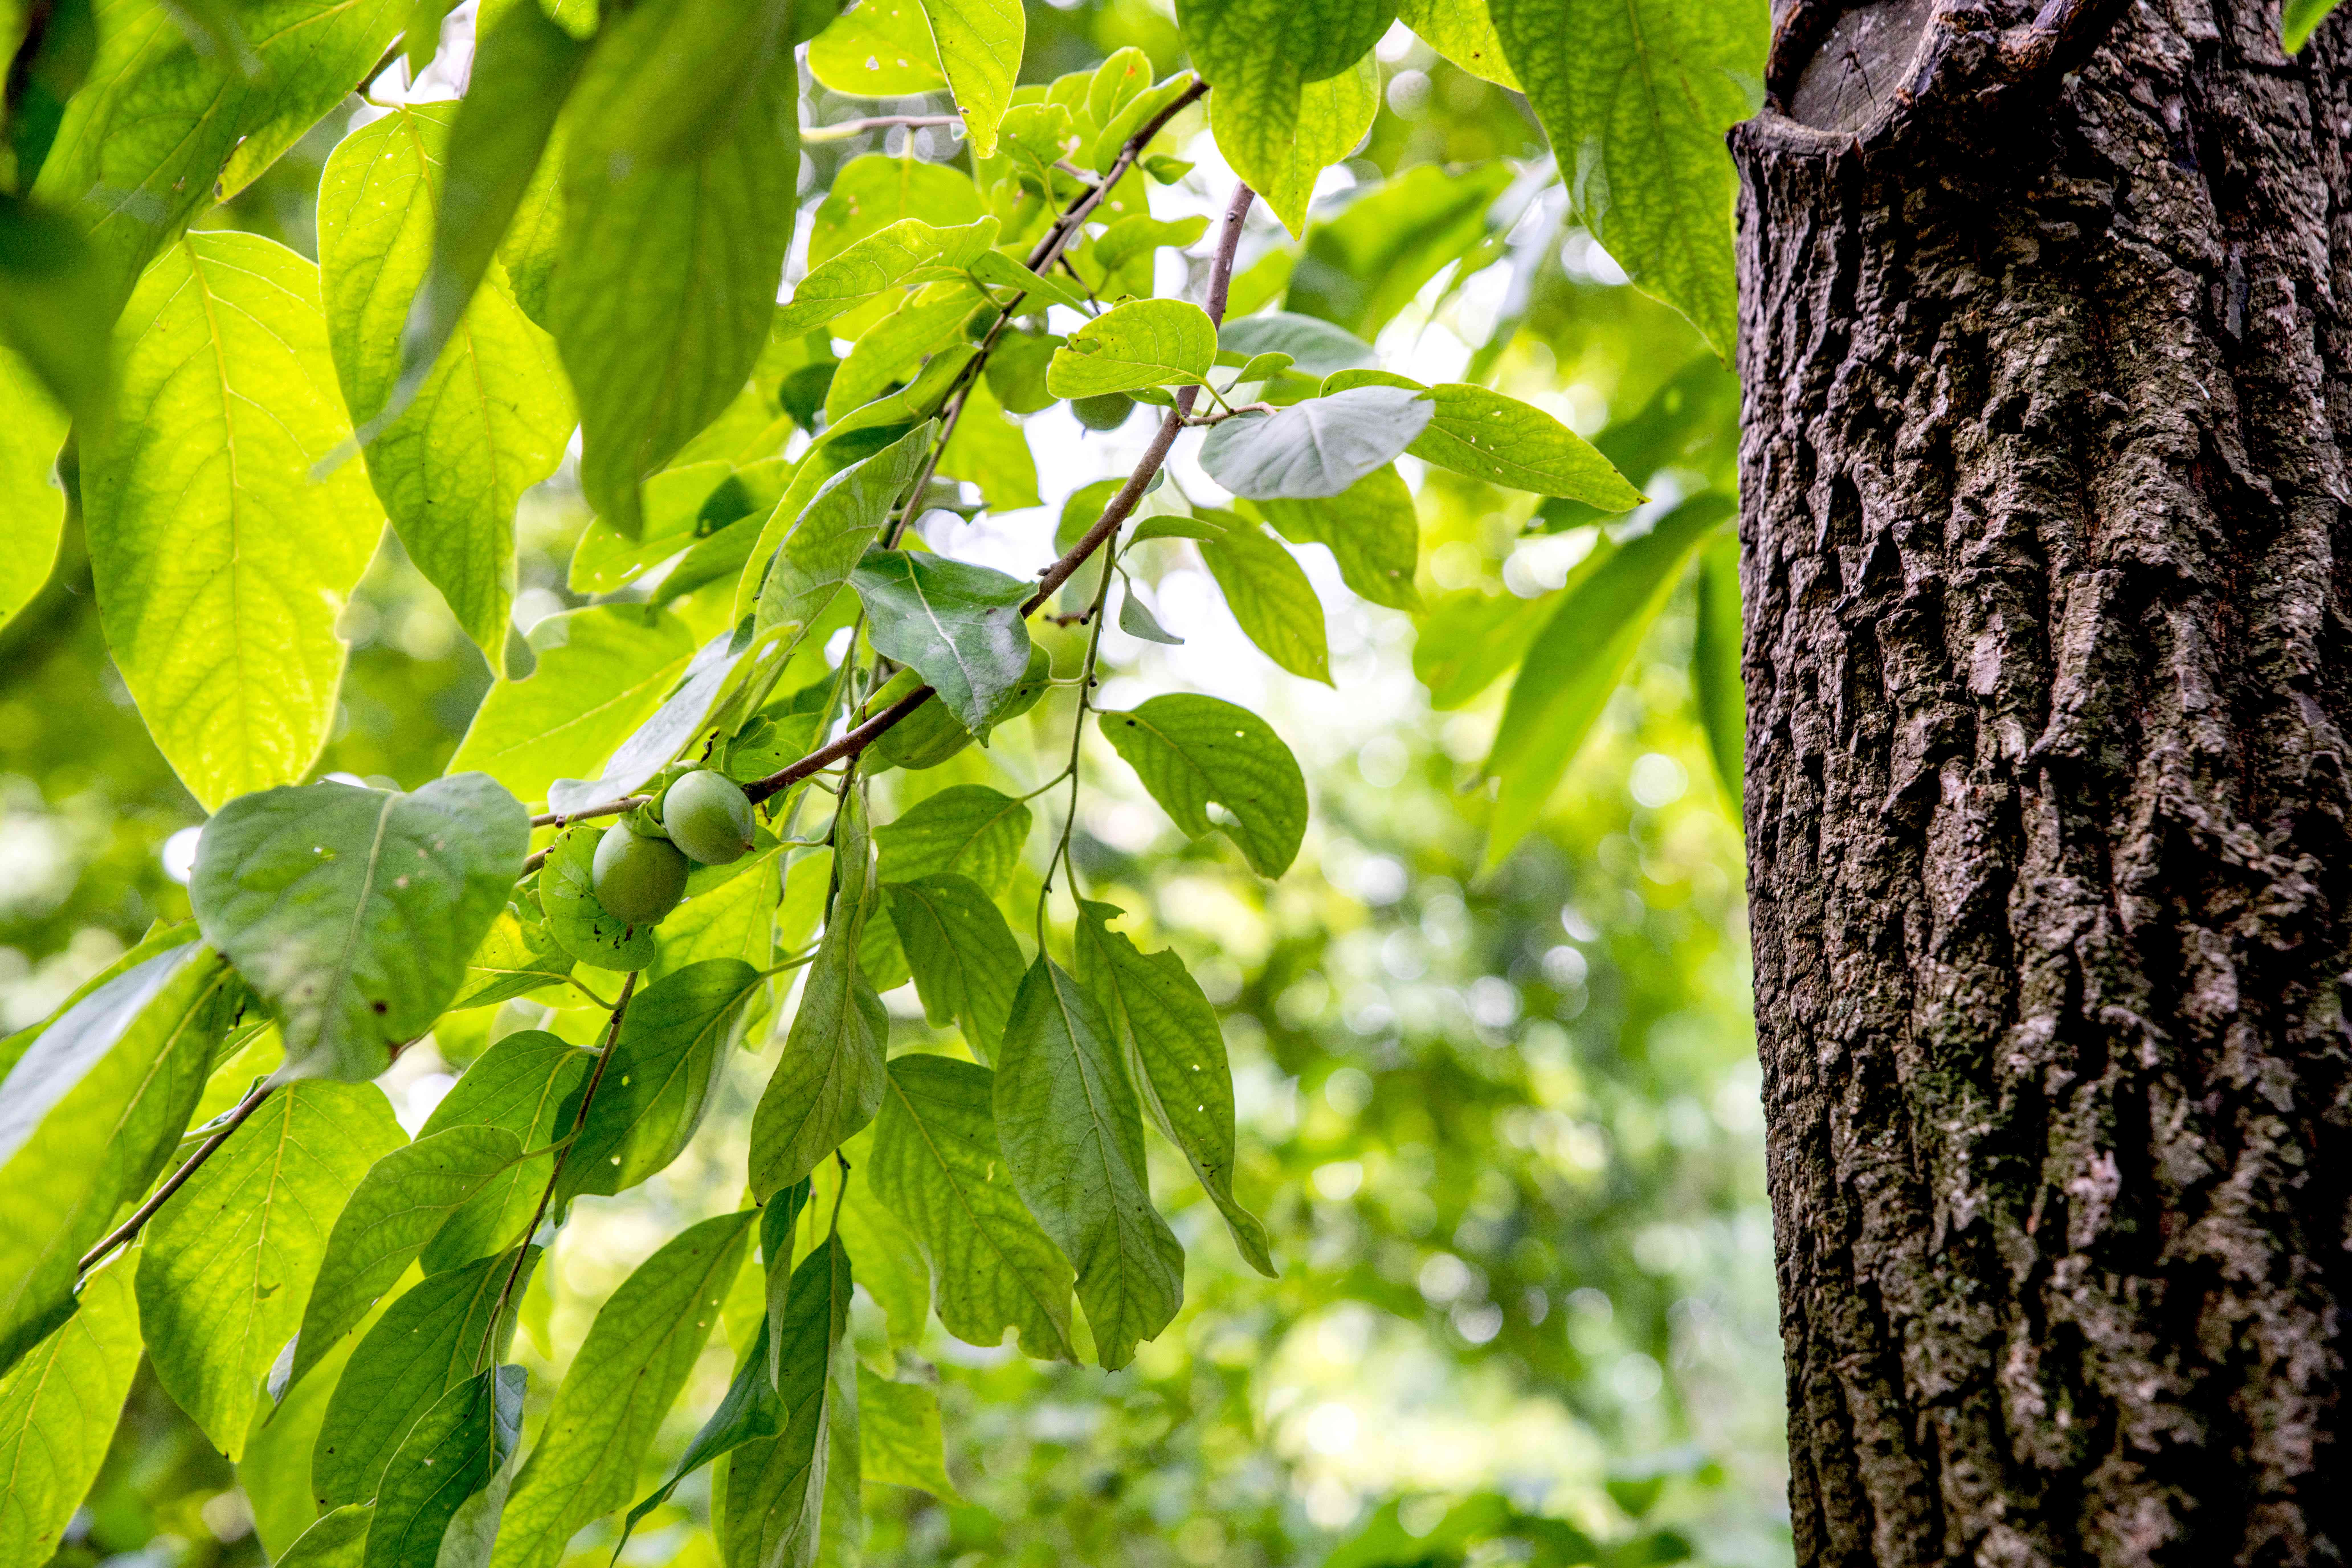 Persimmon tree trunk with deep grooves and branches with round light green fruit